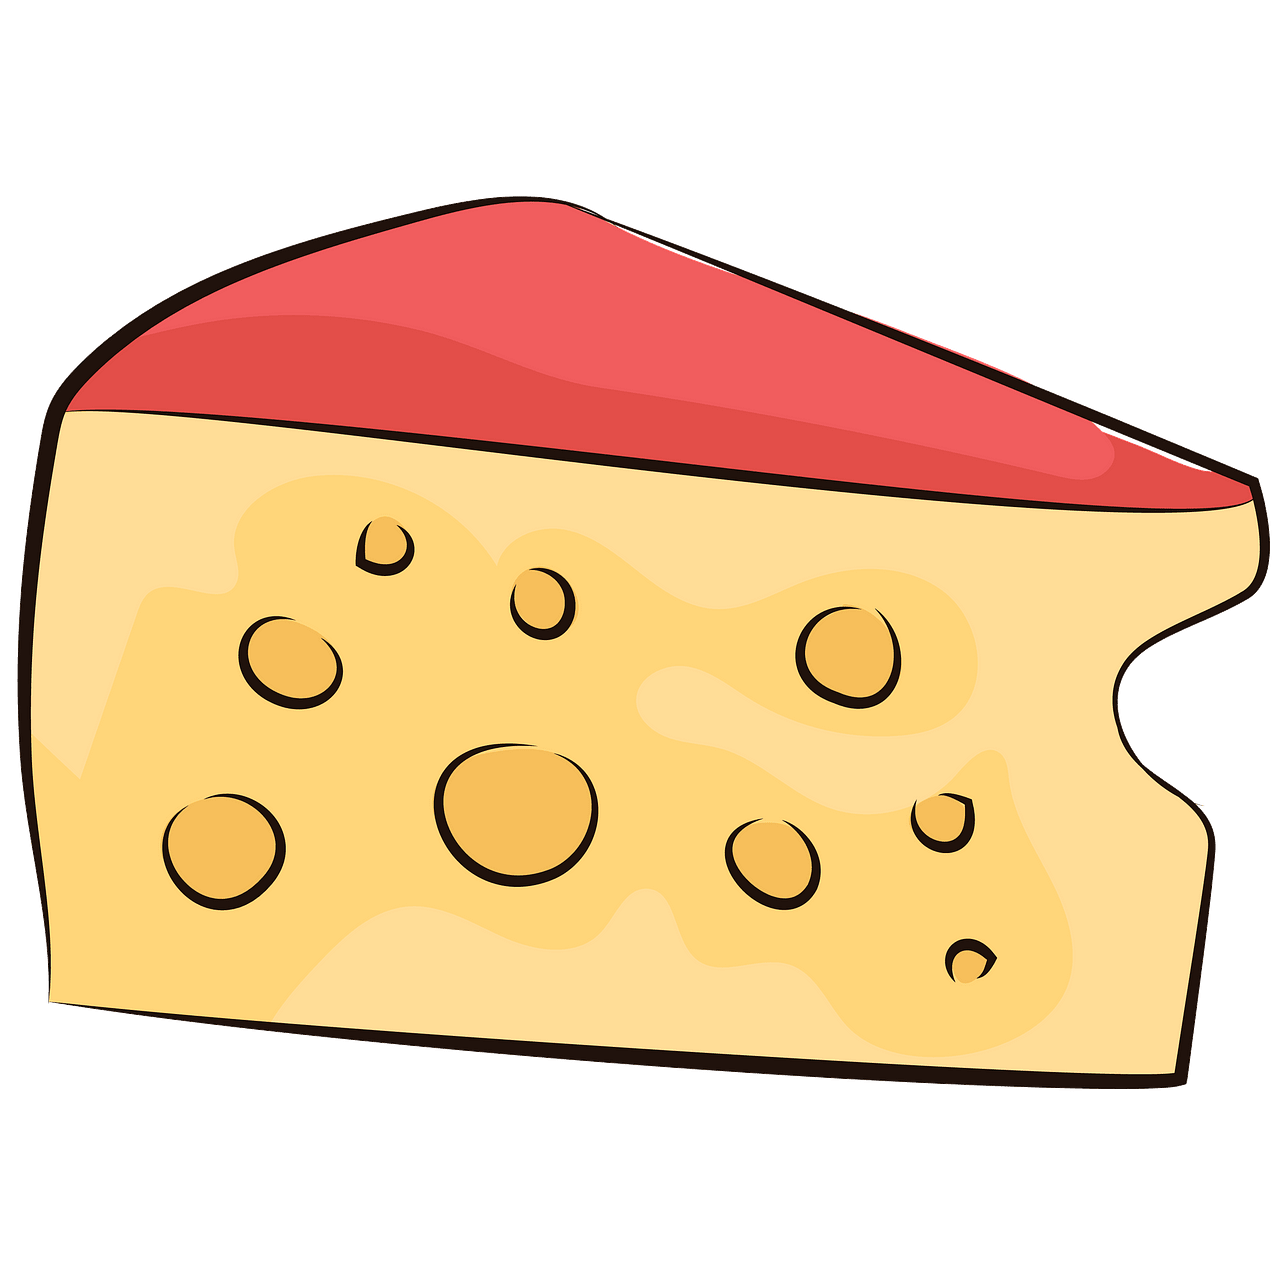 Cheese clipart. Free download..